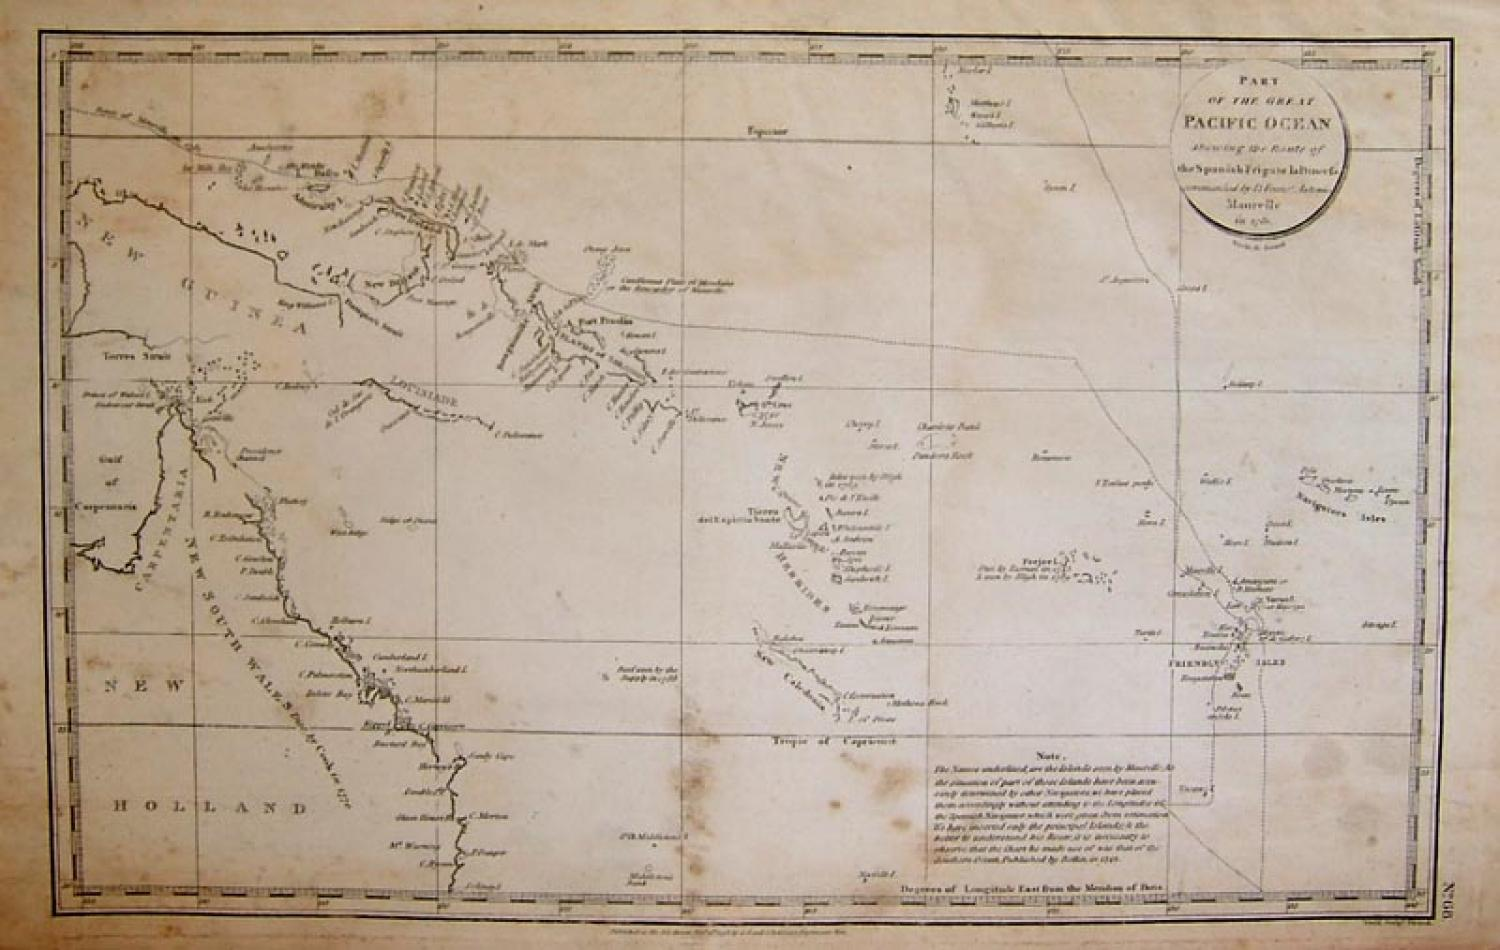 La Perouse - Chart Of The Great Pacific Ocean